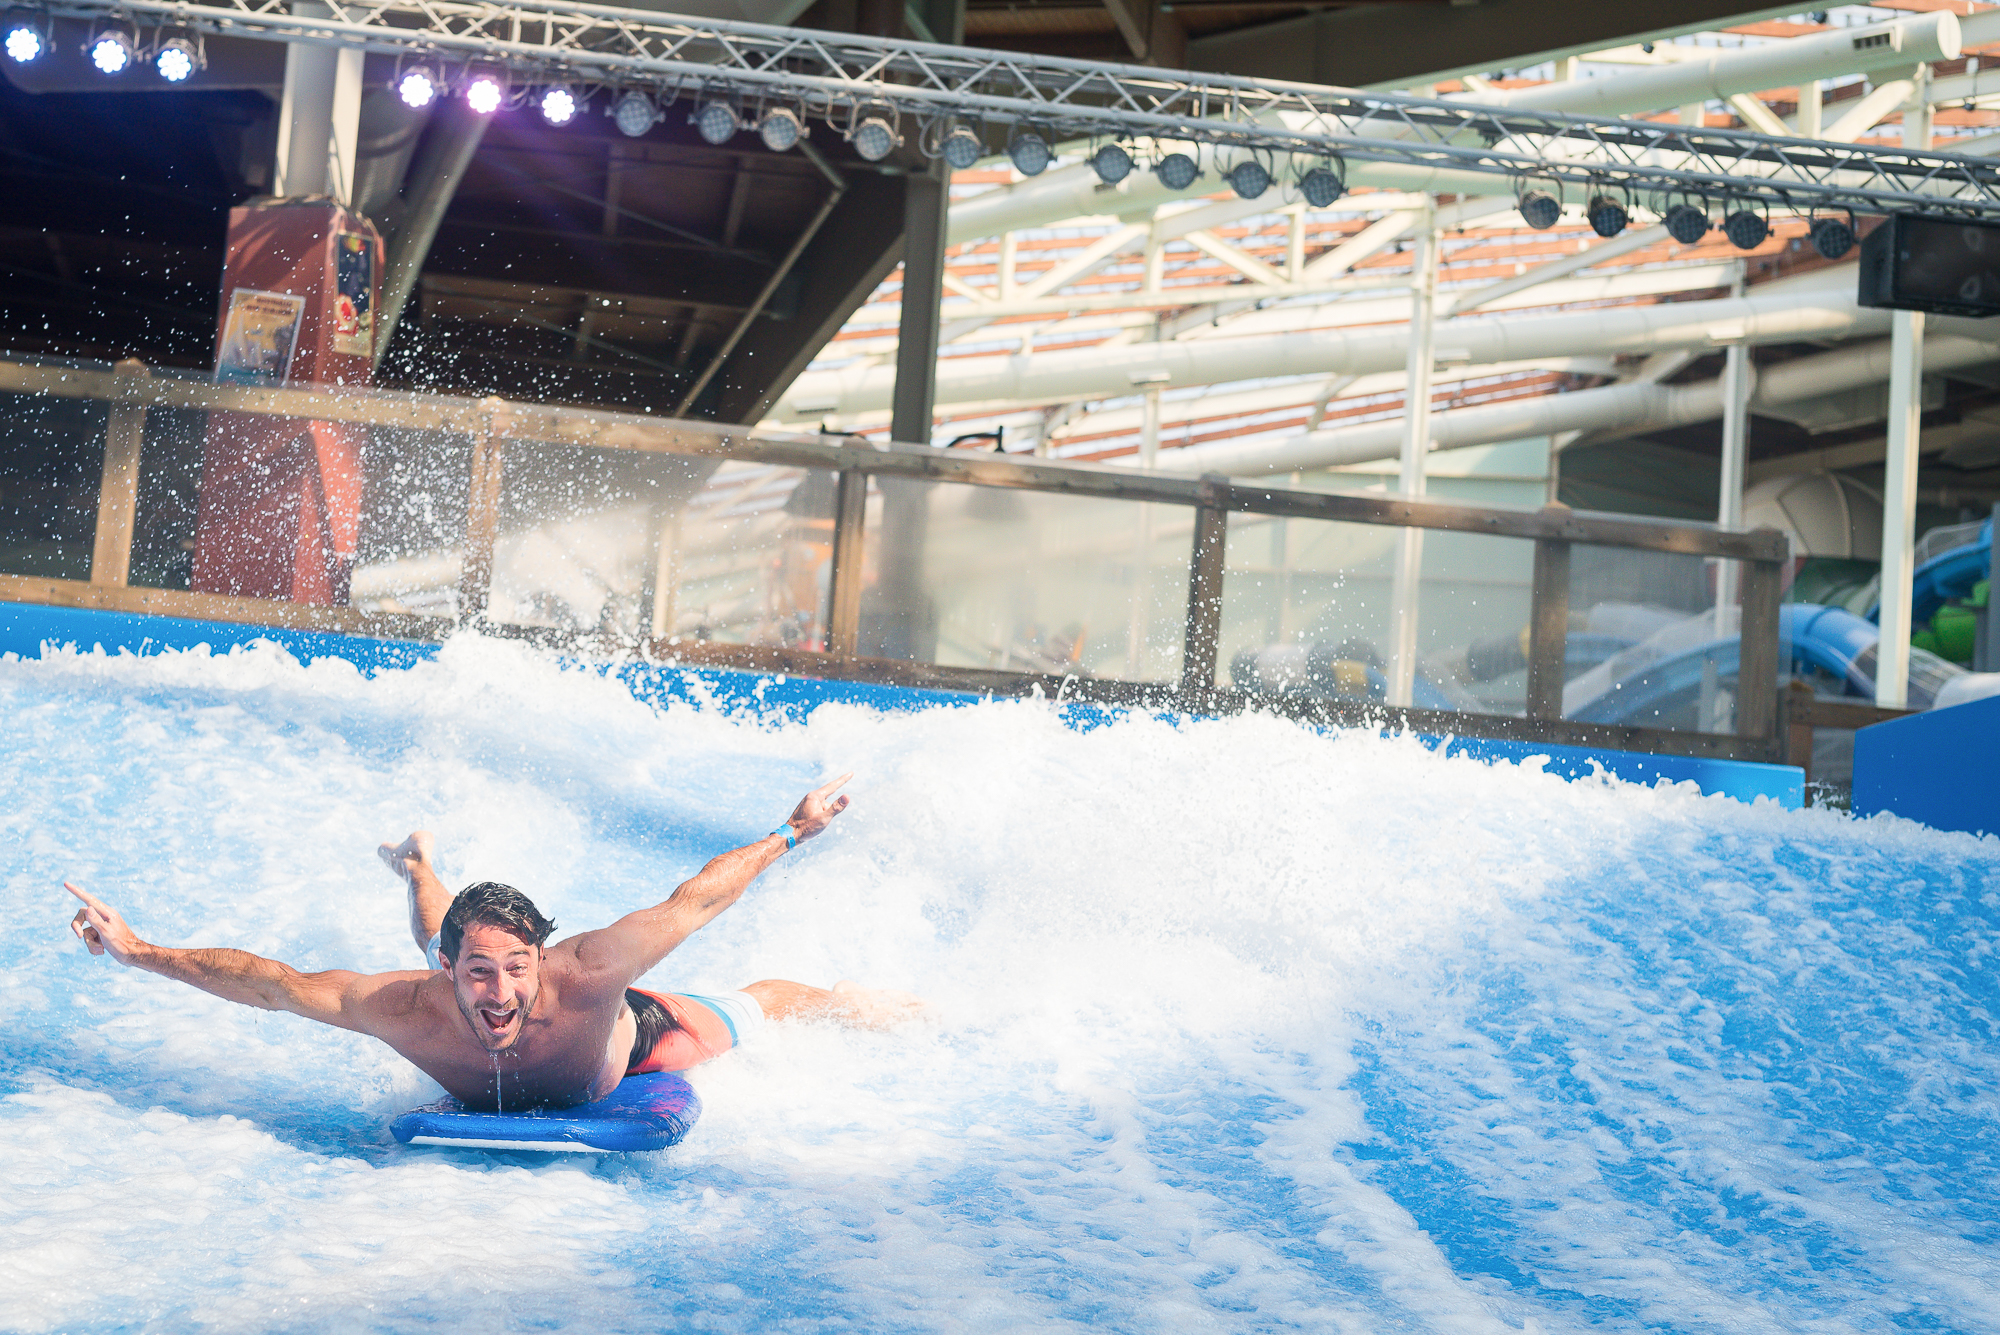 Aquatopia Flowrider Surfing 30 Top Indoor Waterparks Around The World By Aquatic Group April